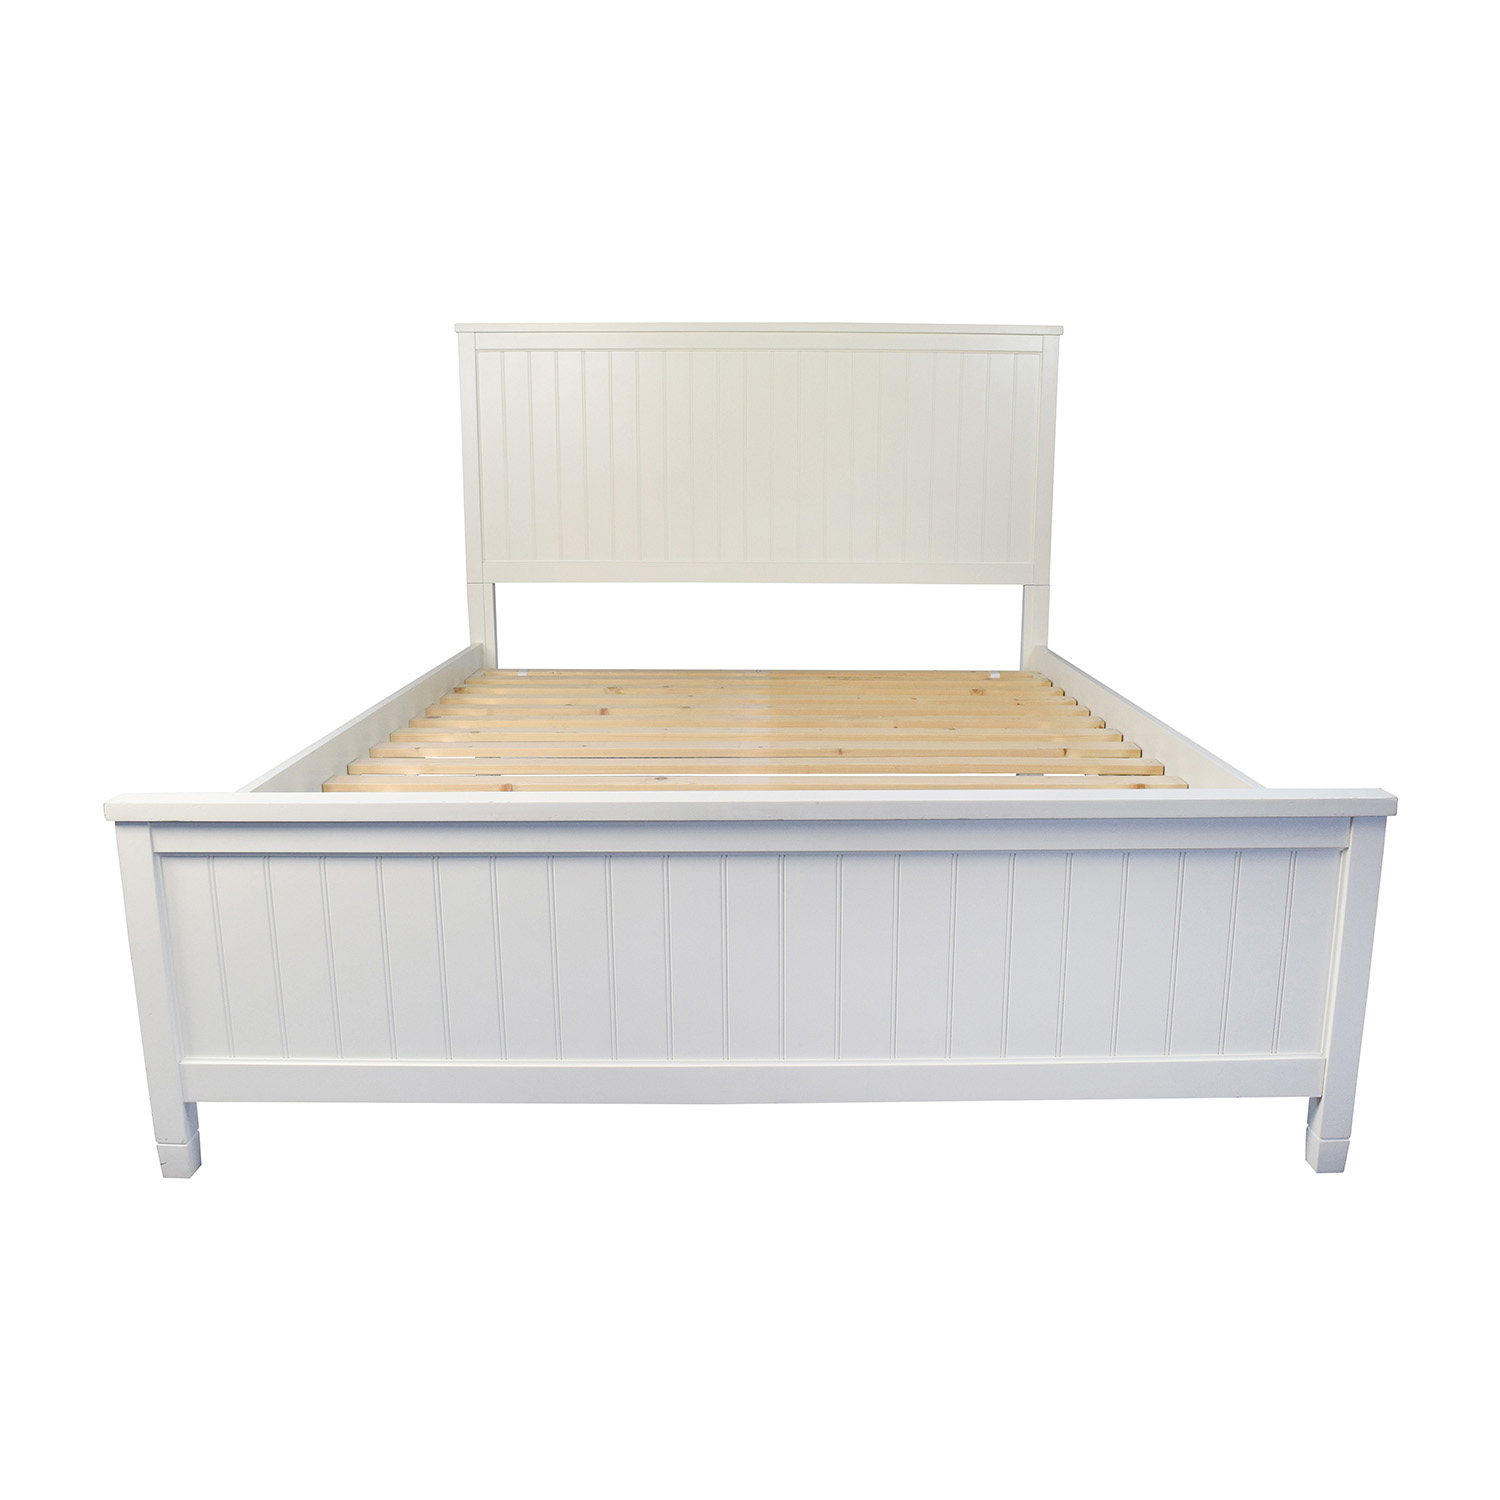 51% OFF - Pottery Barn Pottery Barn Wooden Queen Sized Bed ...